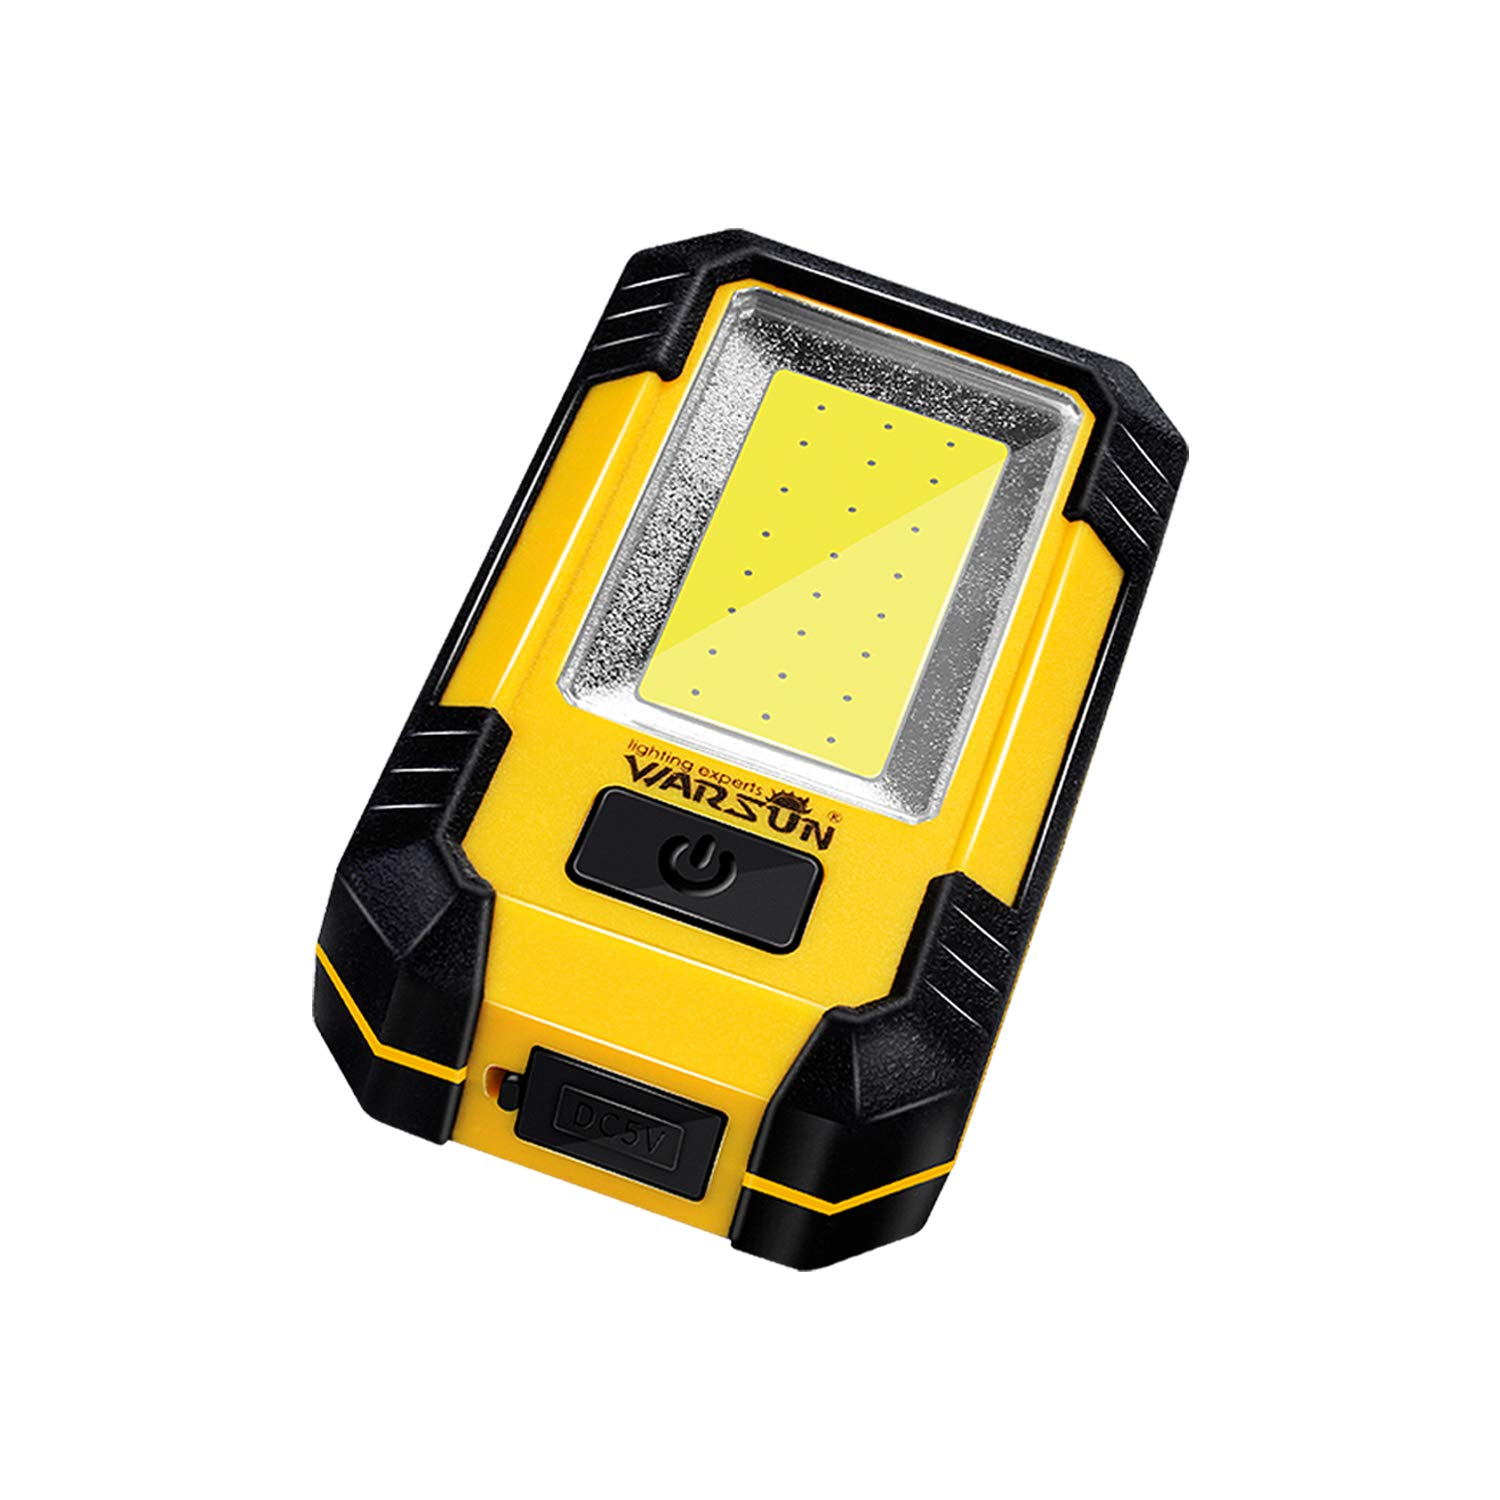 WARSUN Portable LED Rechargeable Work Light,Magnetic Base & Hanging Hook, 30W 1200Lumens Super Bright, 5000K, for Car Repairing, Camping, Hiking, Backpacking, Fishing, Hurricane, Yellow by Warsun